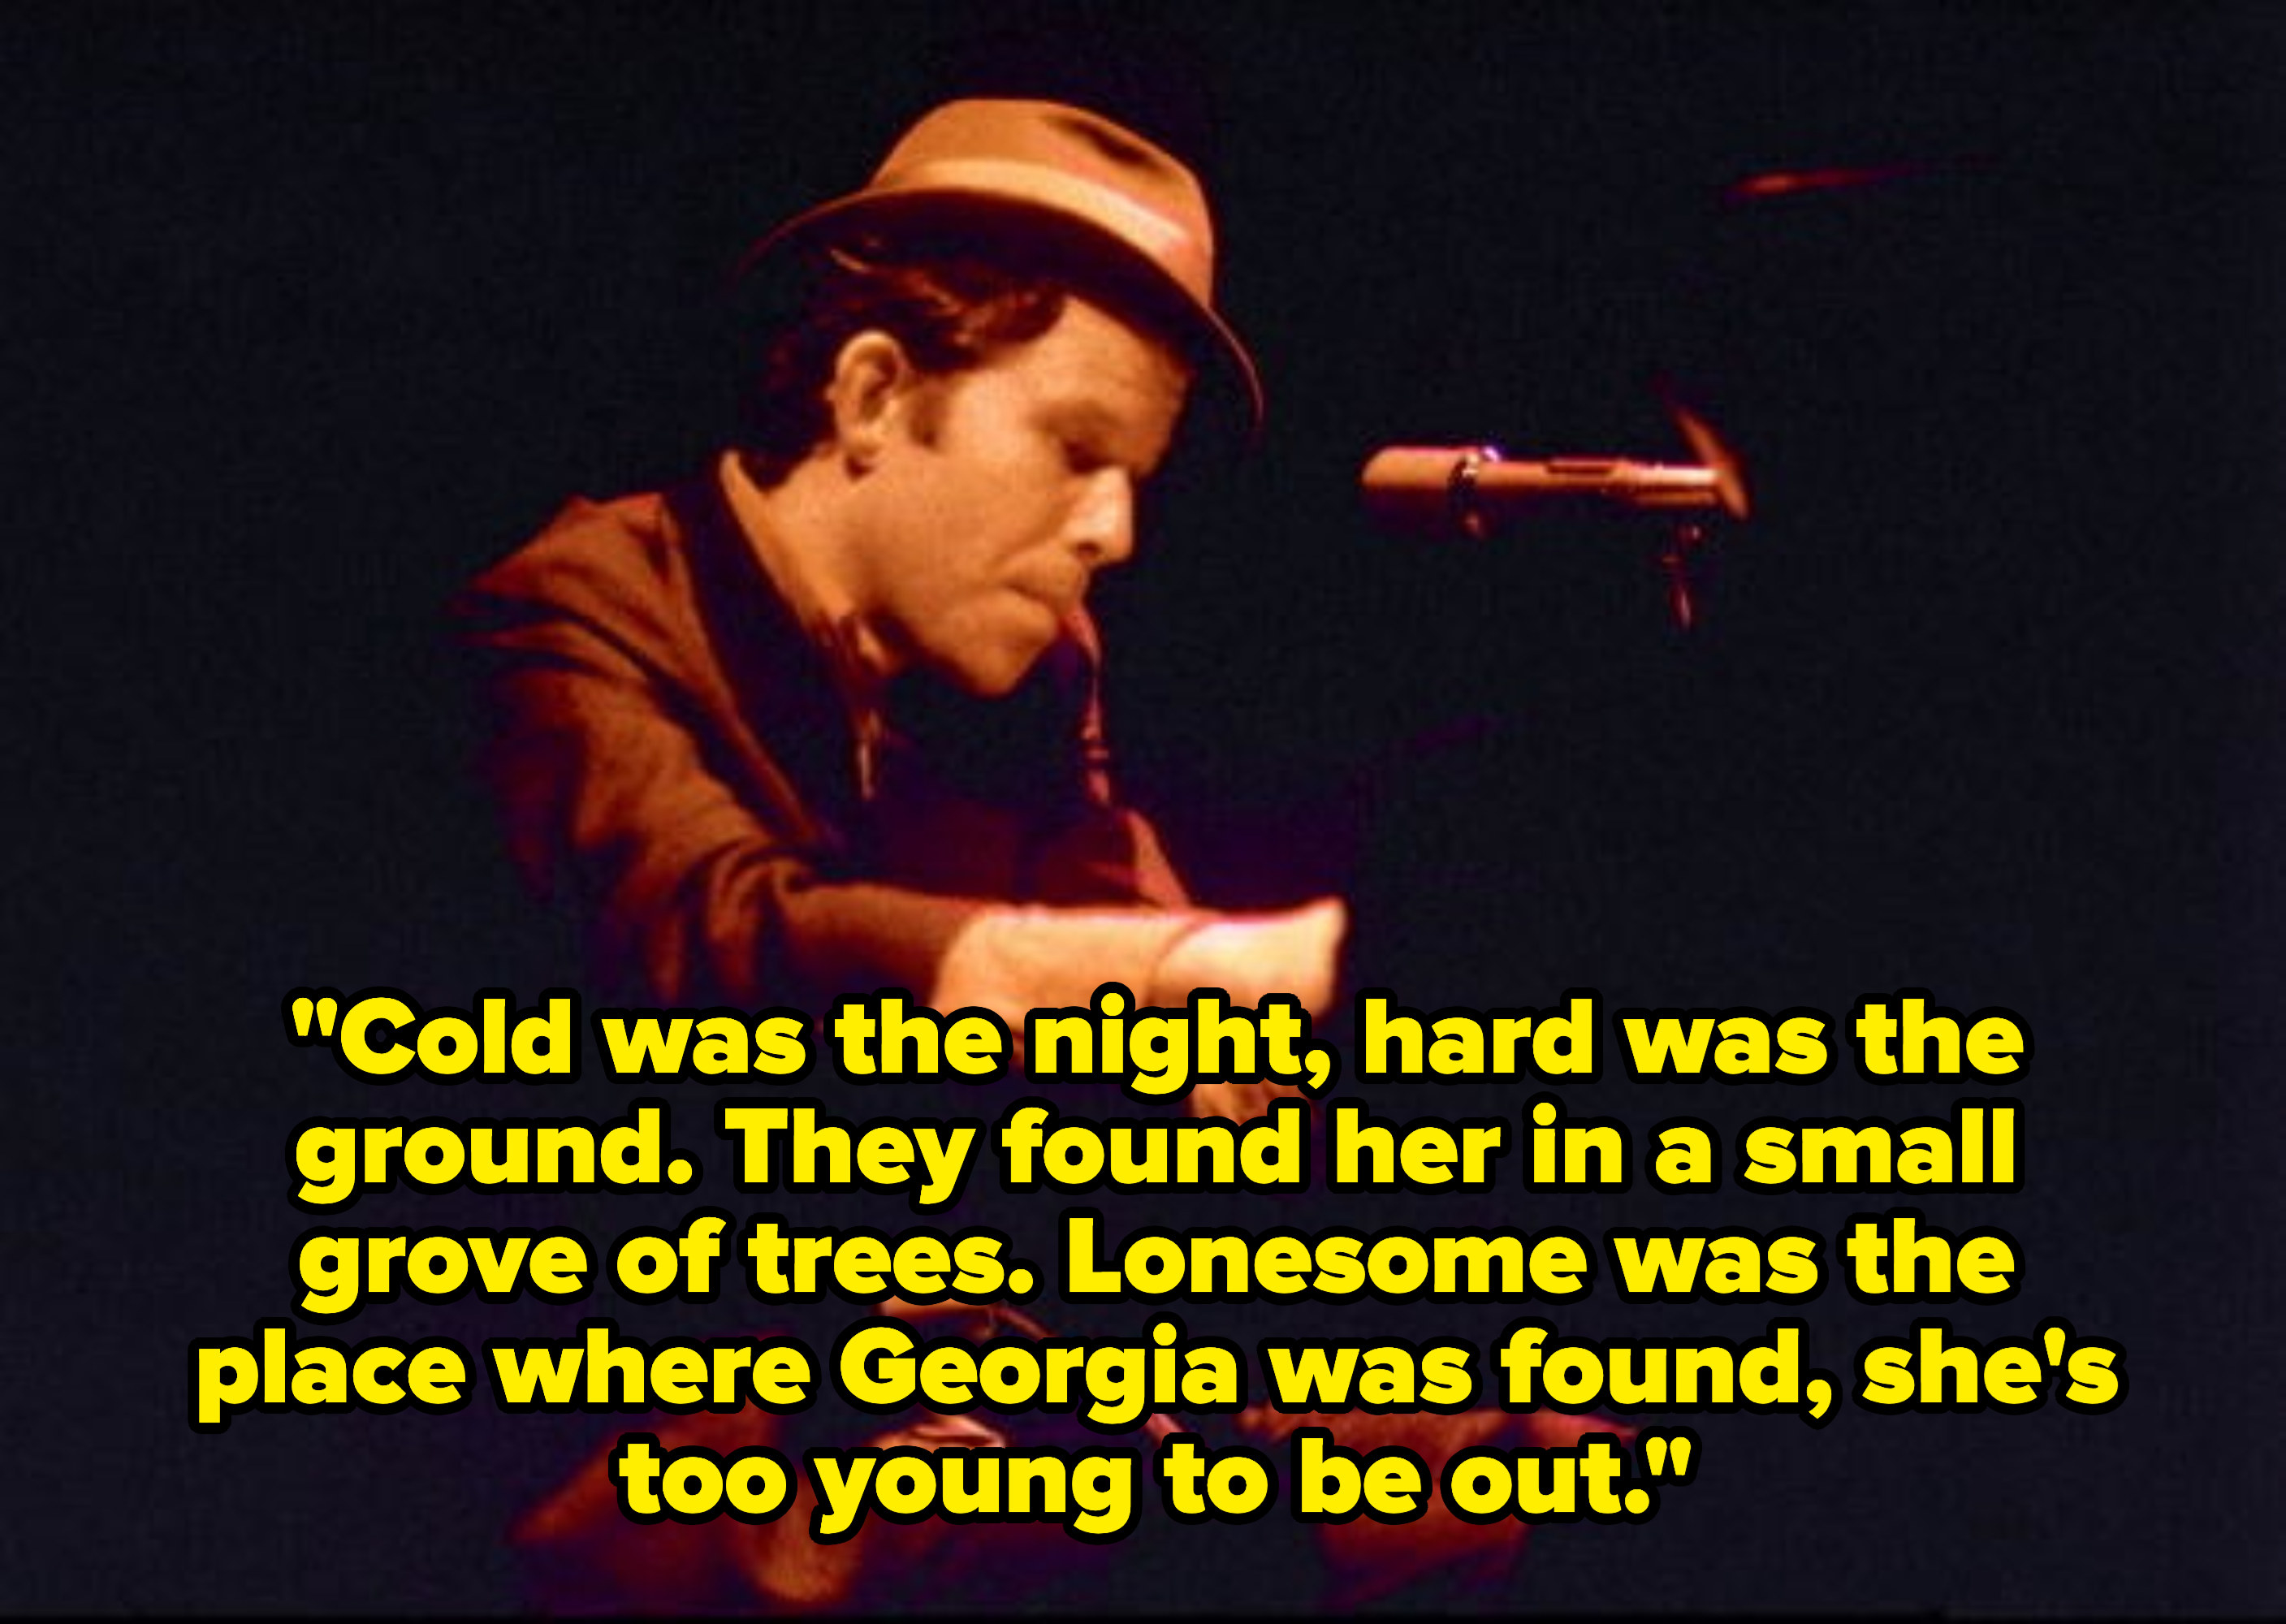 Lyrics: Cold was the night, hard was the ground. They found her in a small grove of trees. Lonesome was the place where Georgia was found, she's too young to be out